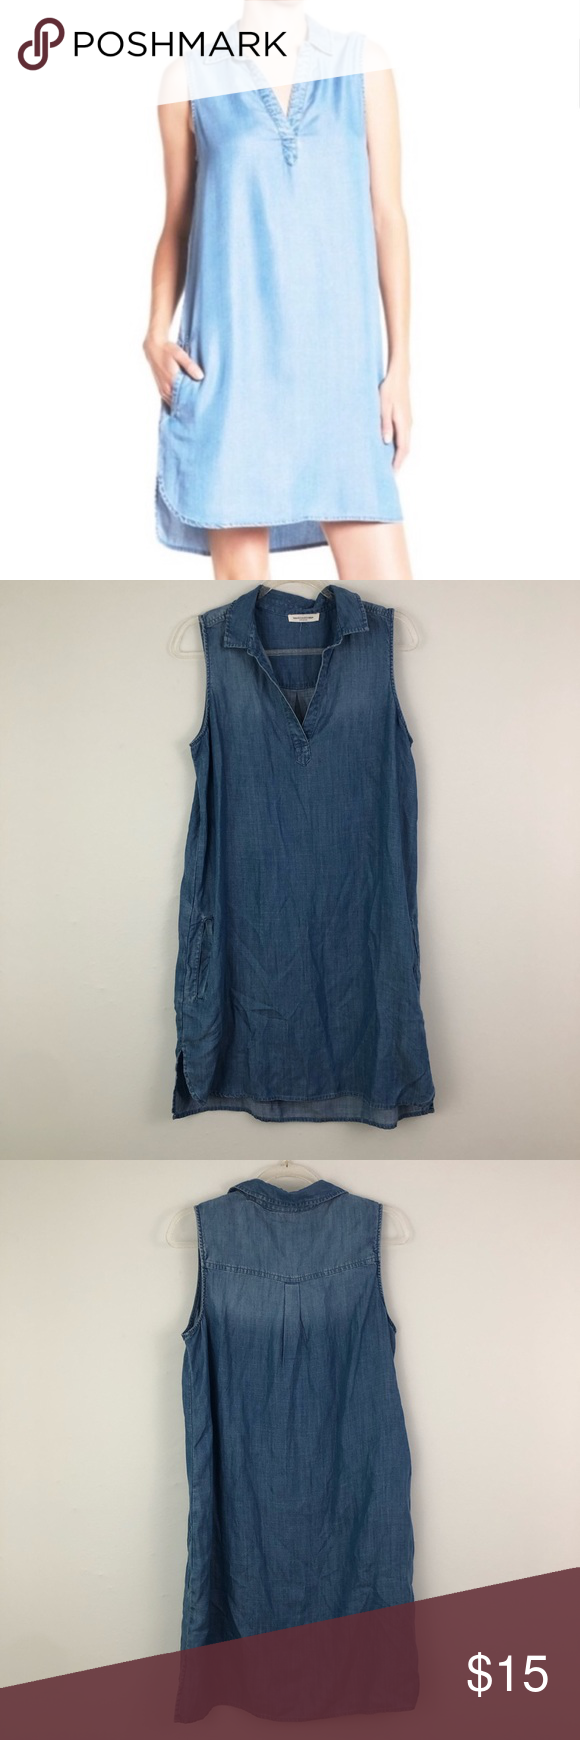 1dce9d8fb5 Beach Lunch Lounge Chambray Shift Dress Collared Beach lunch lounge  chambray shift dress. Collared and